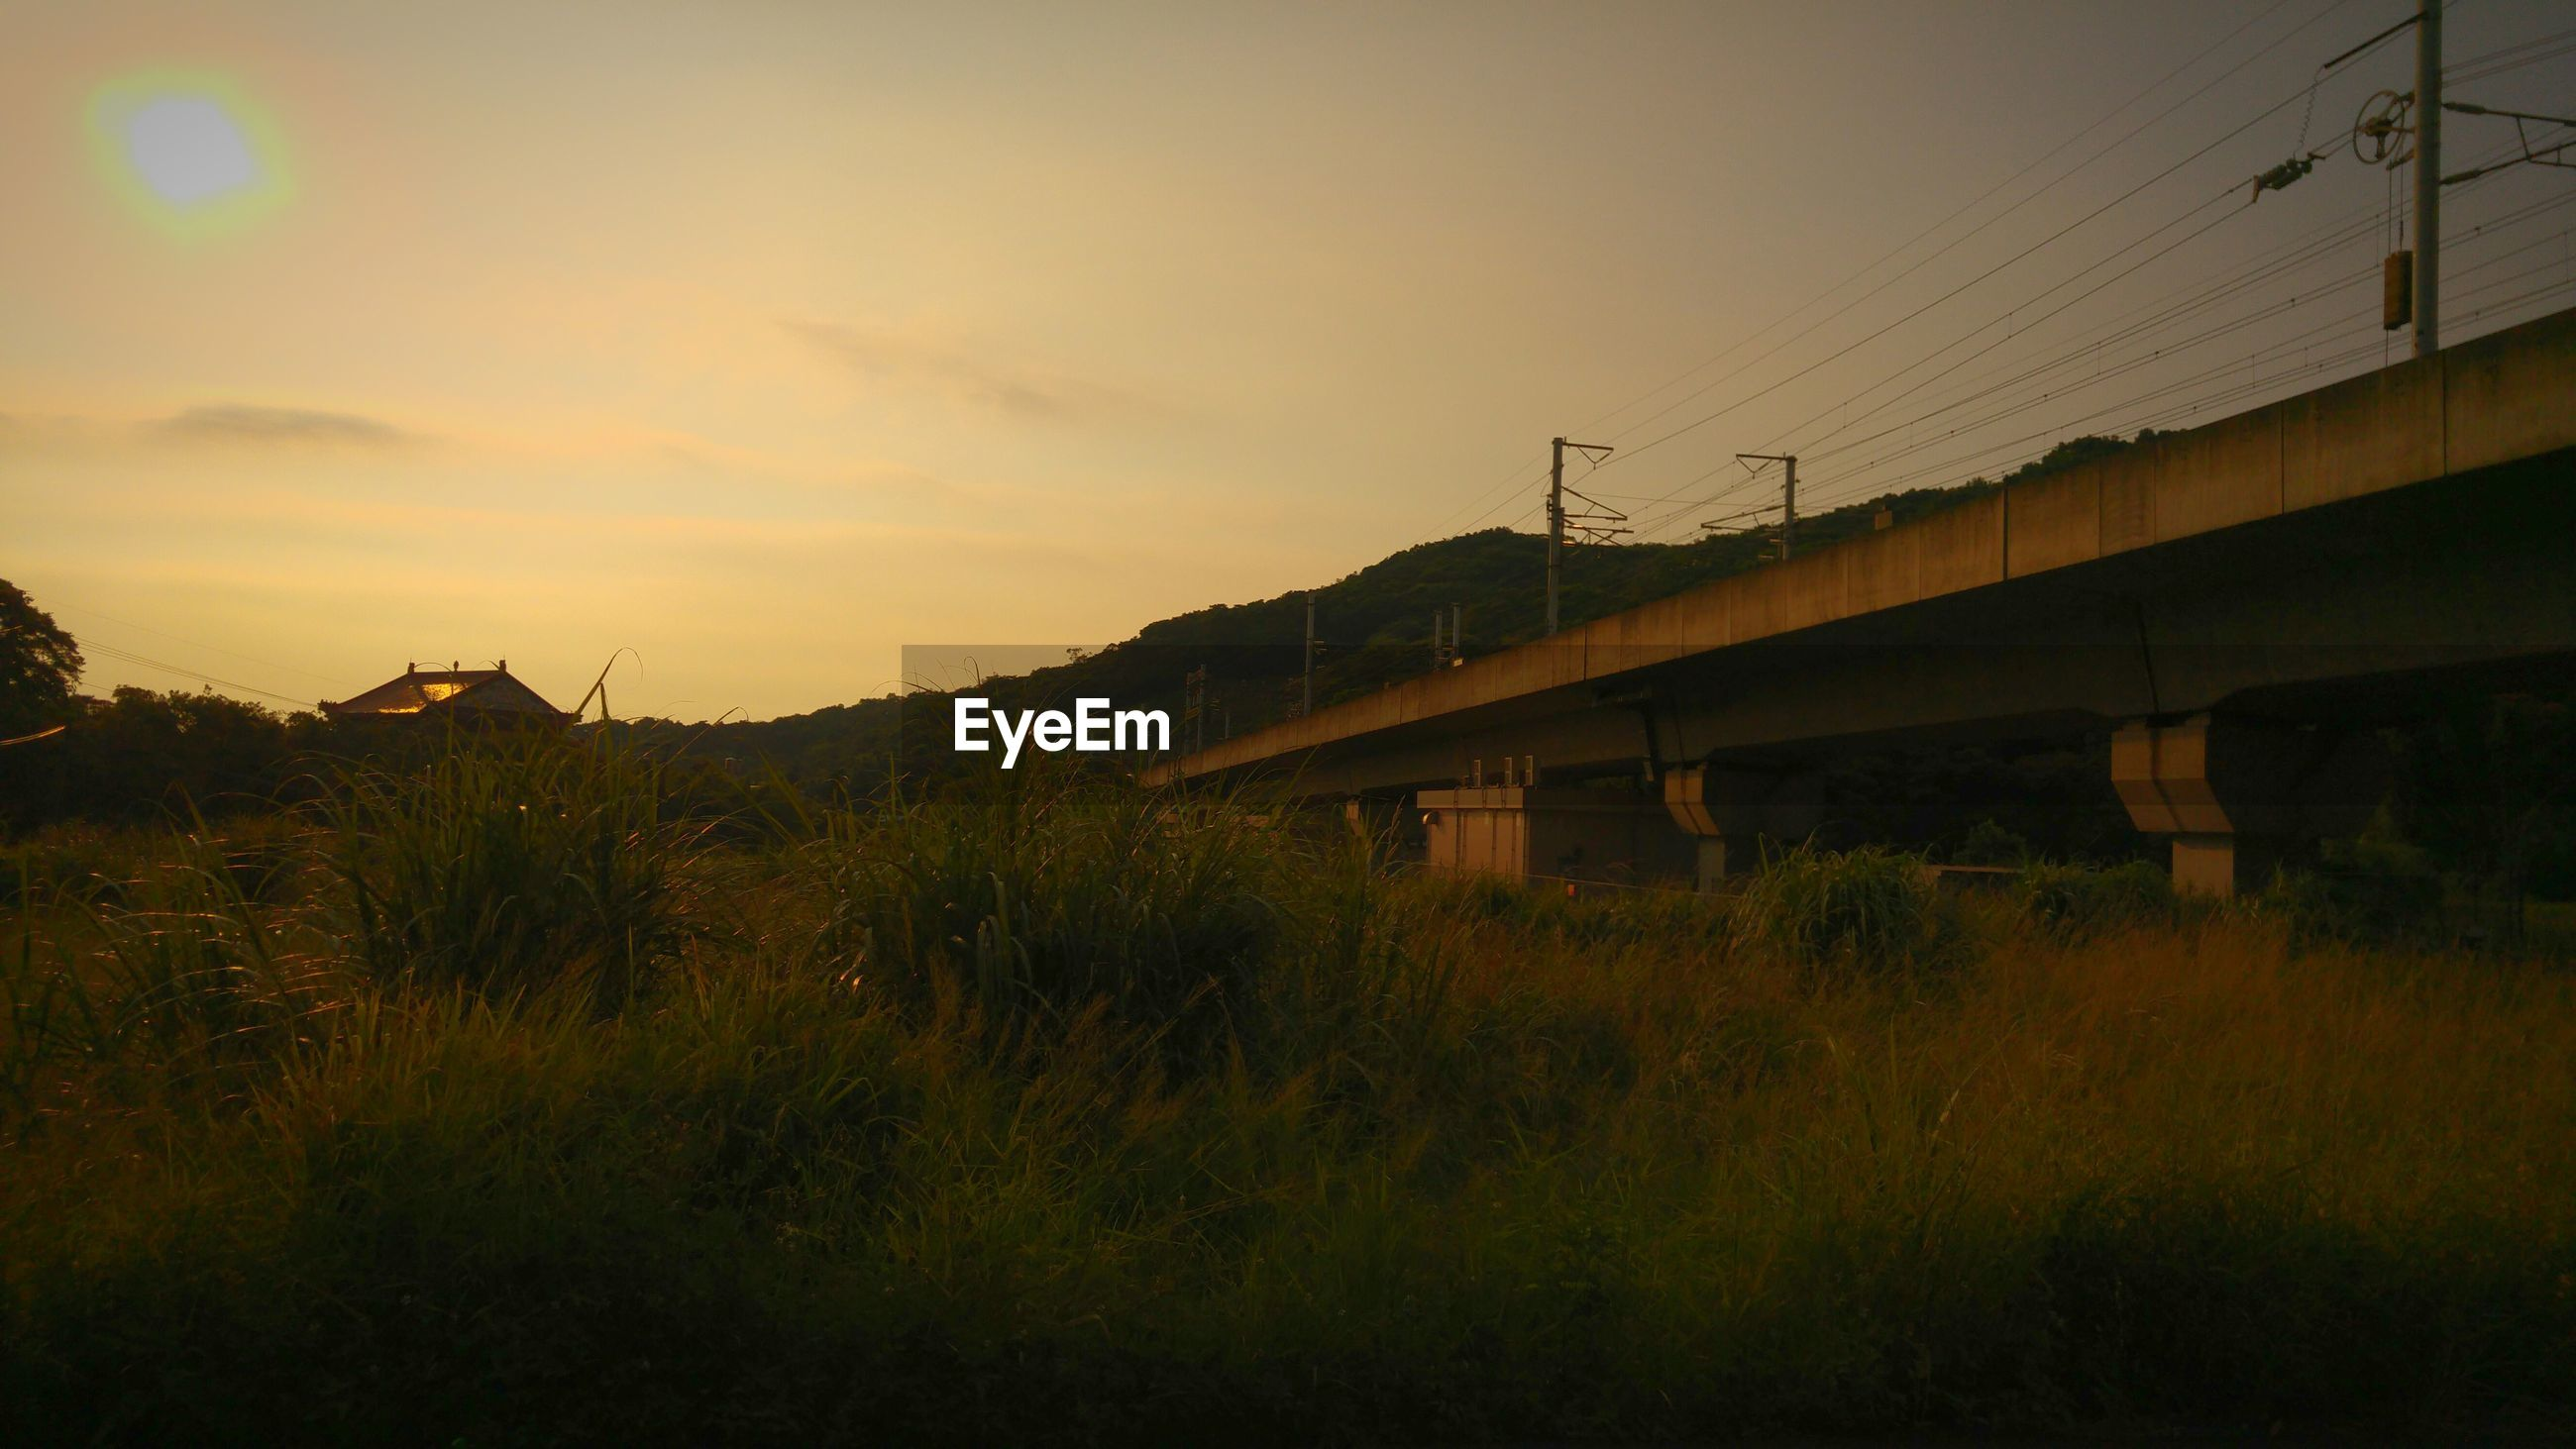 Low angle view of bridge by field against sky during sunset